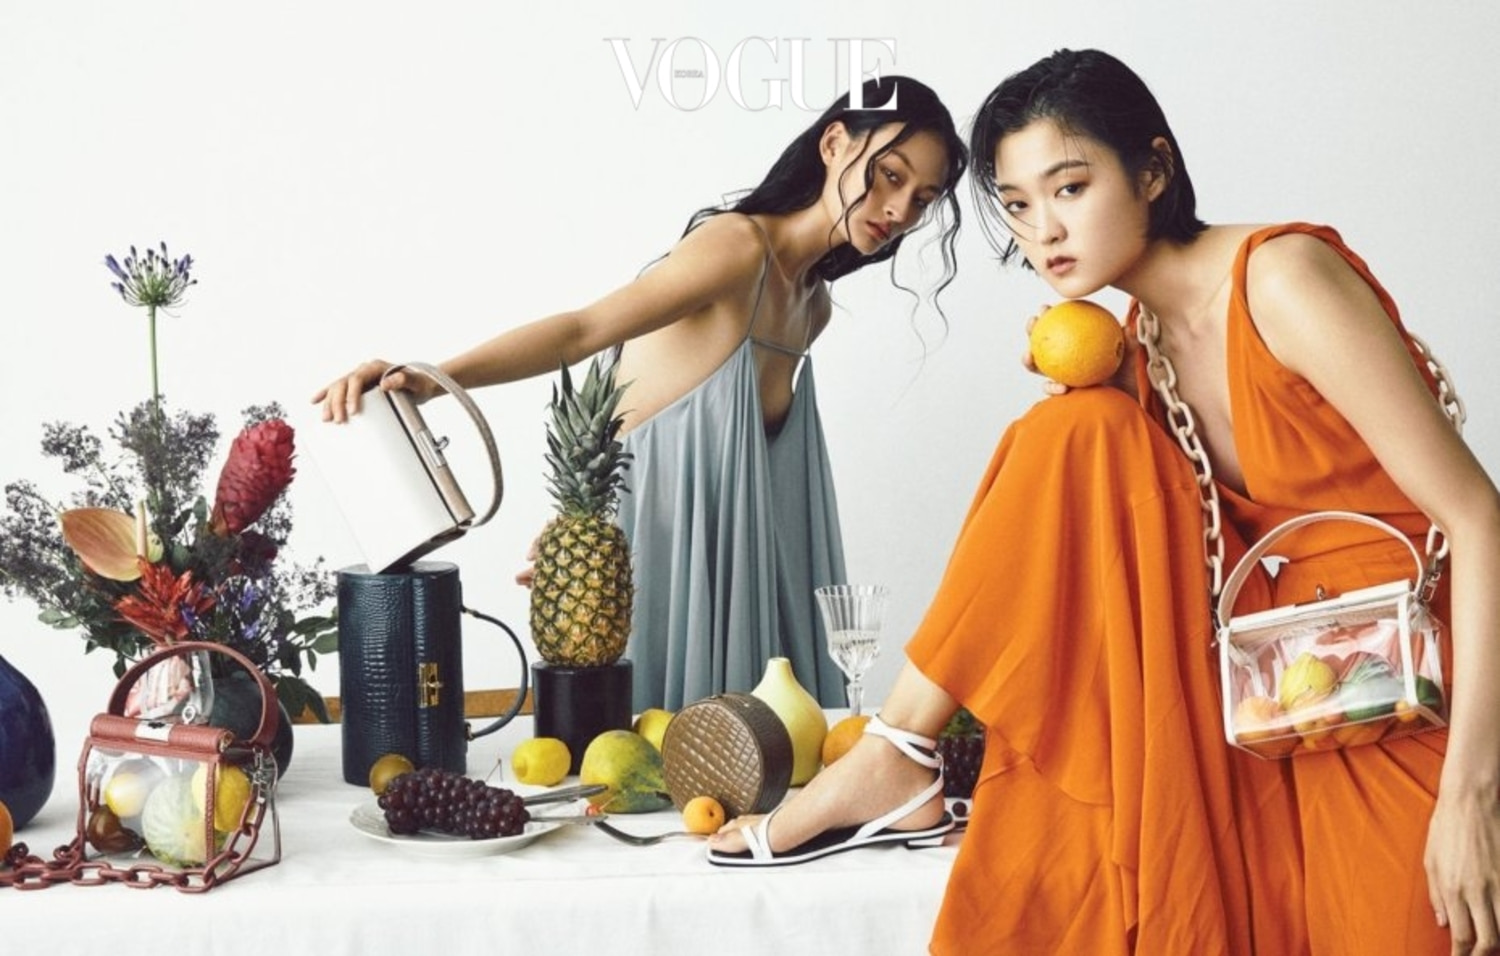 19' VOGUE KOREA